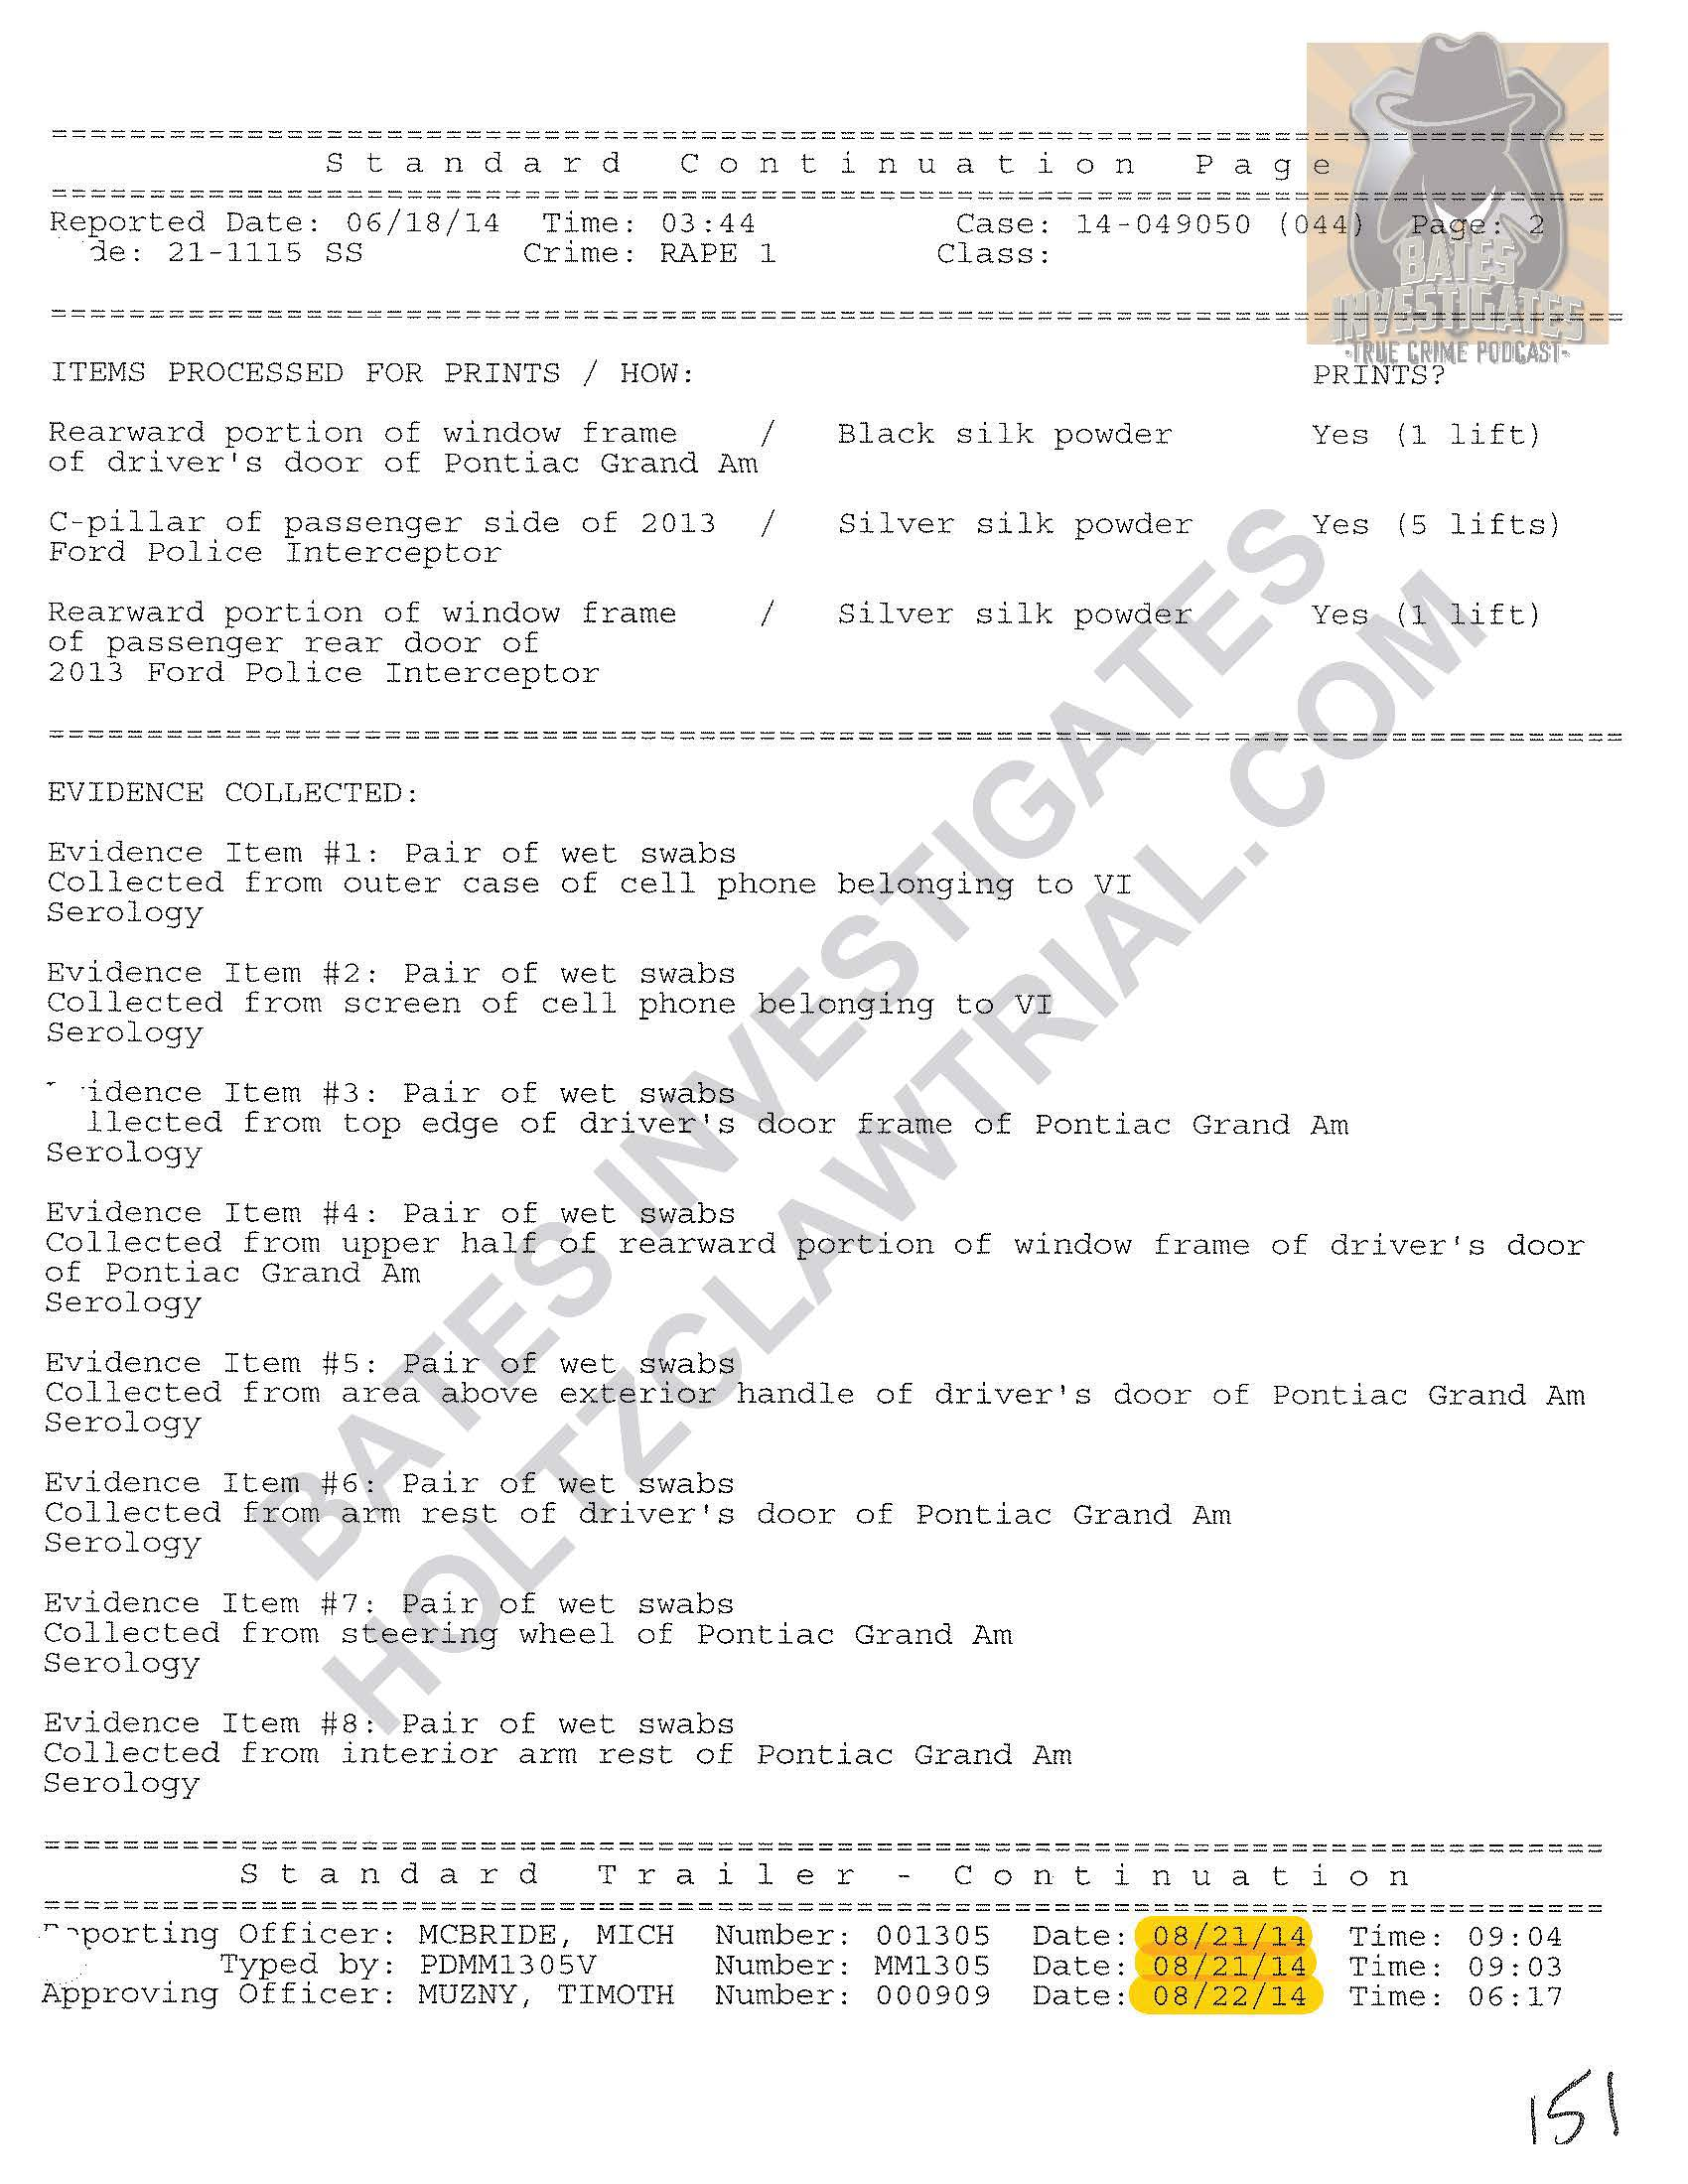 Holtzclaw - Ep02 - Police Reports Watermarked_Page_44.jpg